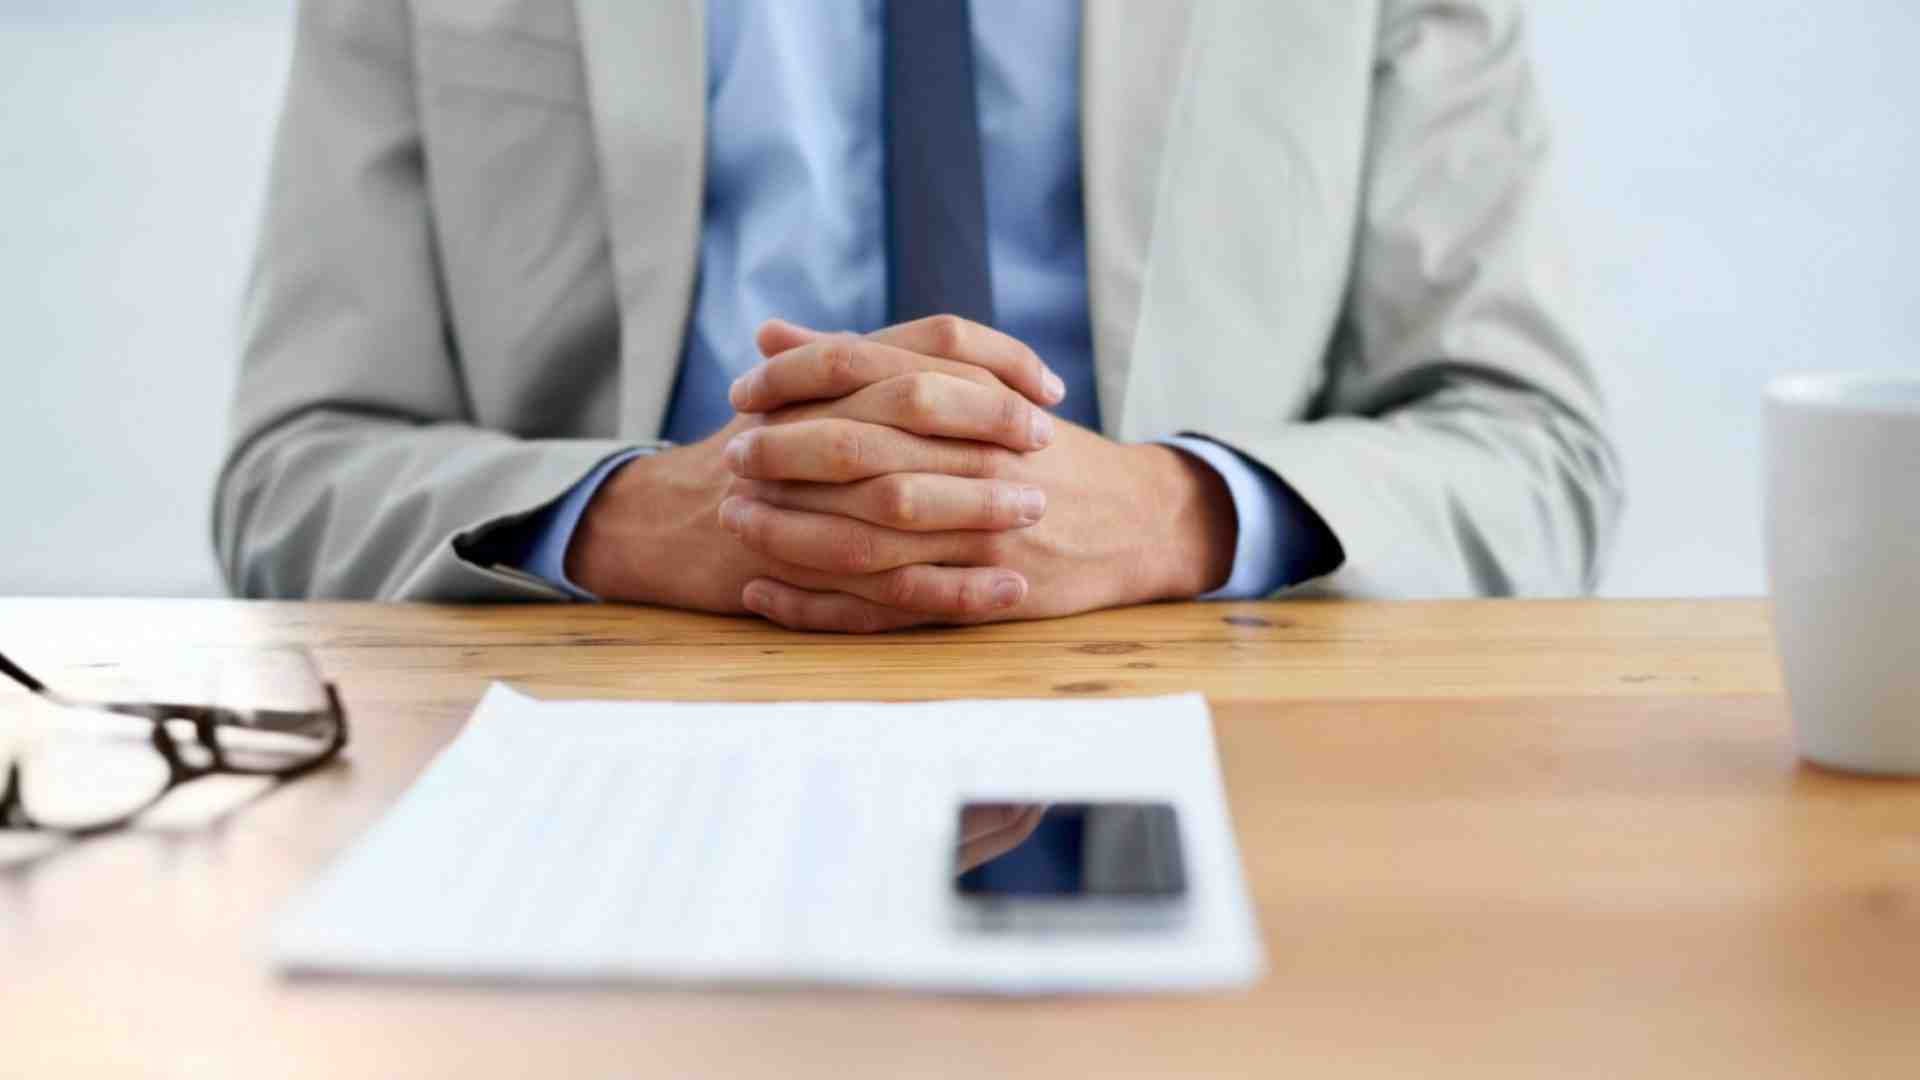 What are the top 3 questions to ask an interviewer?